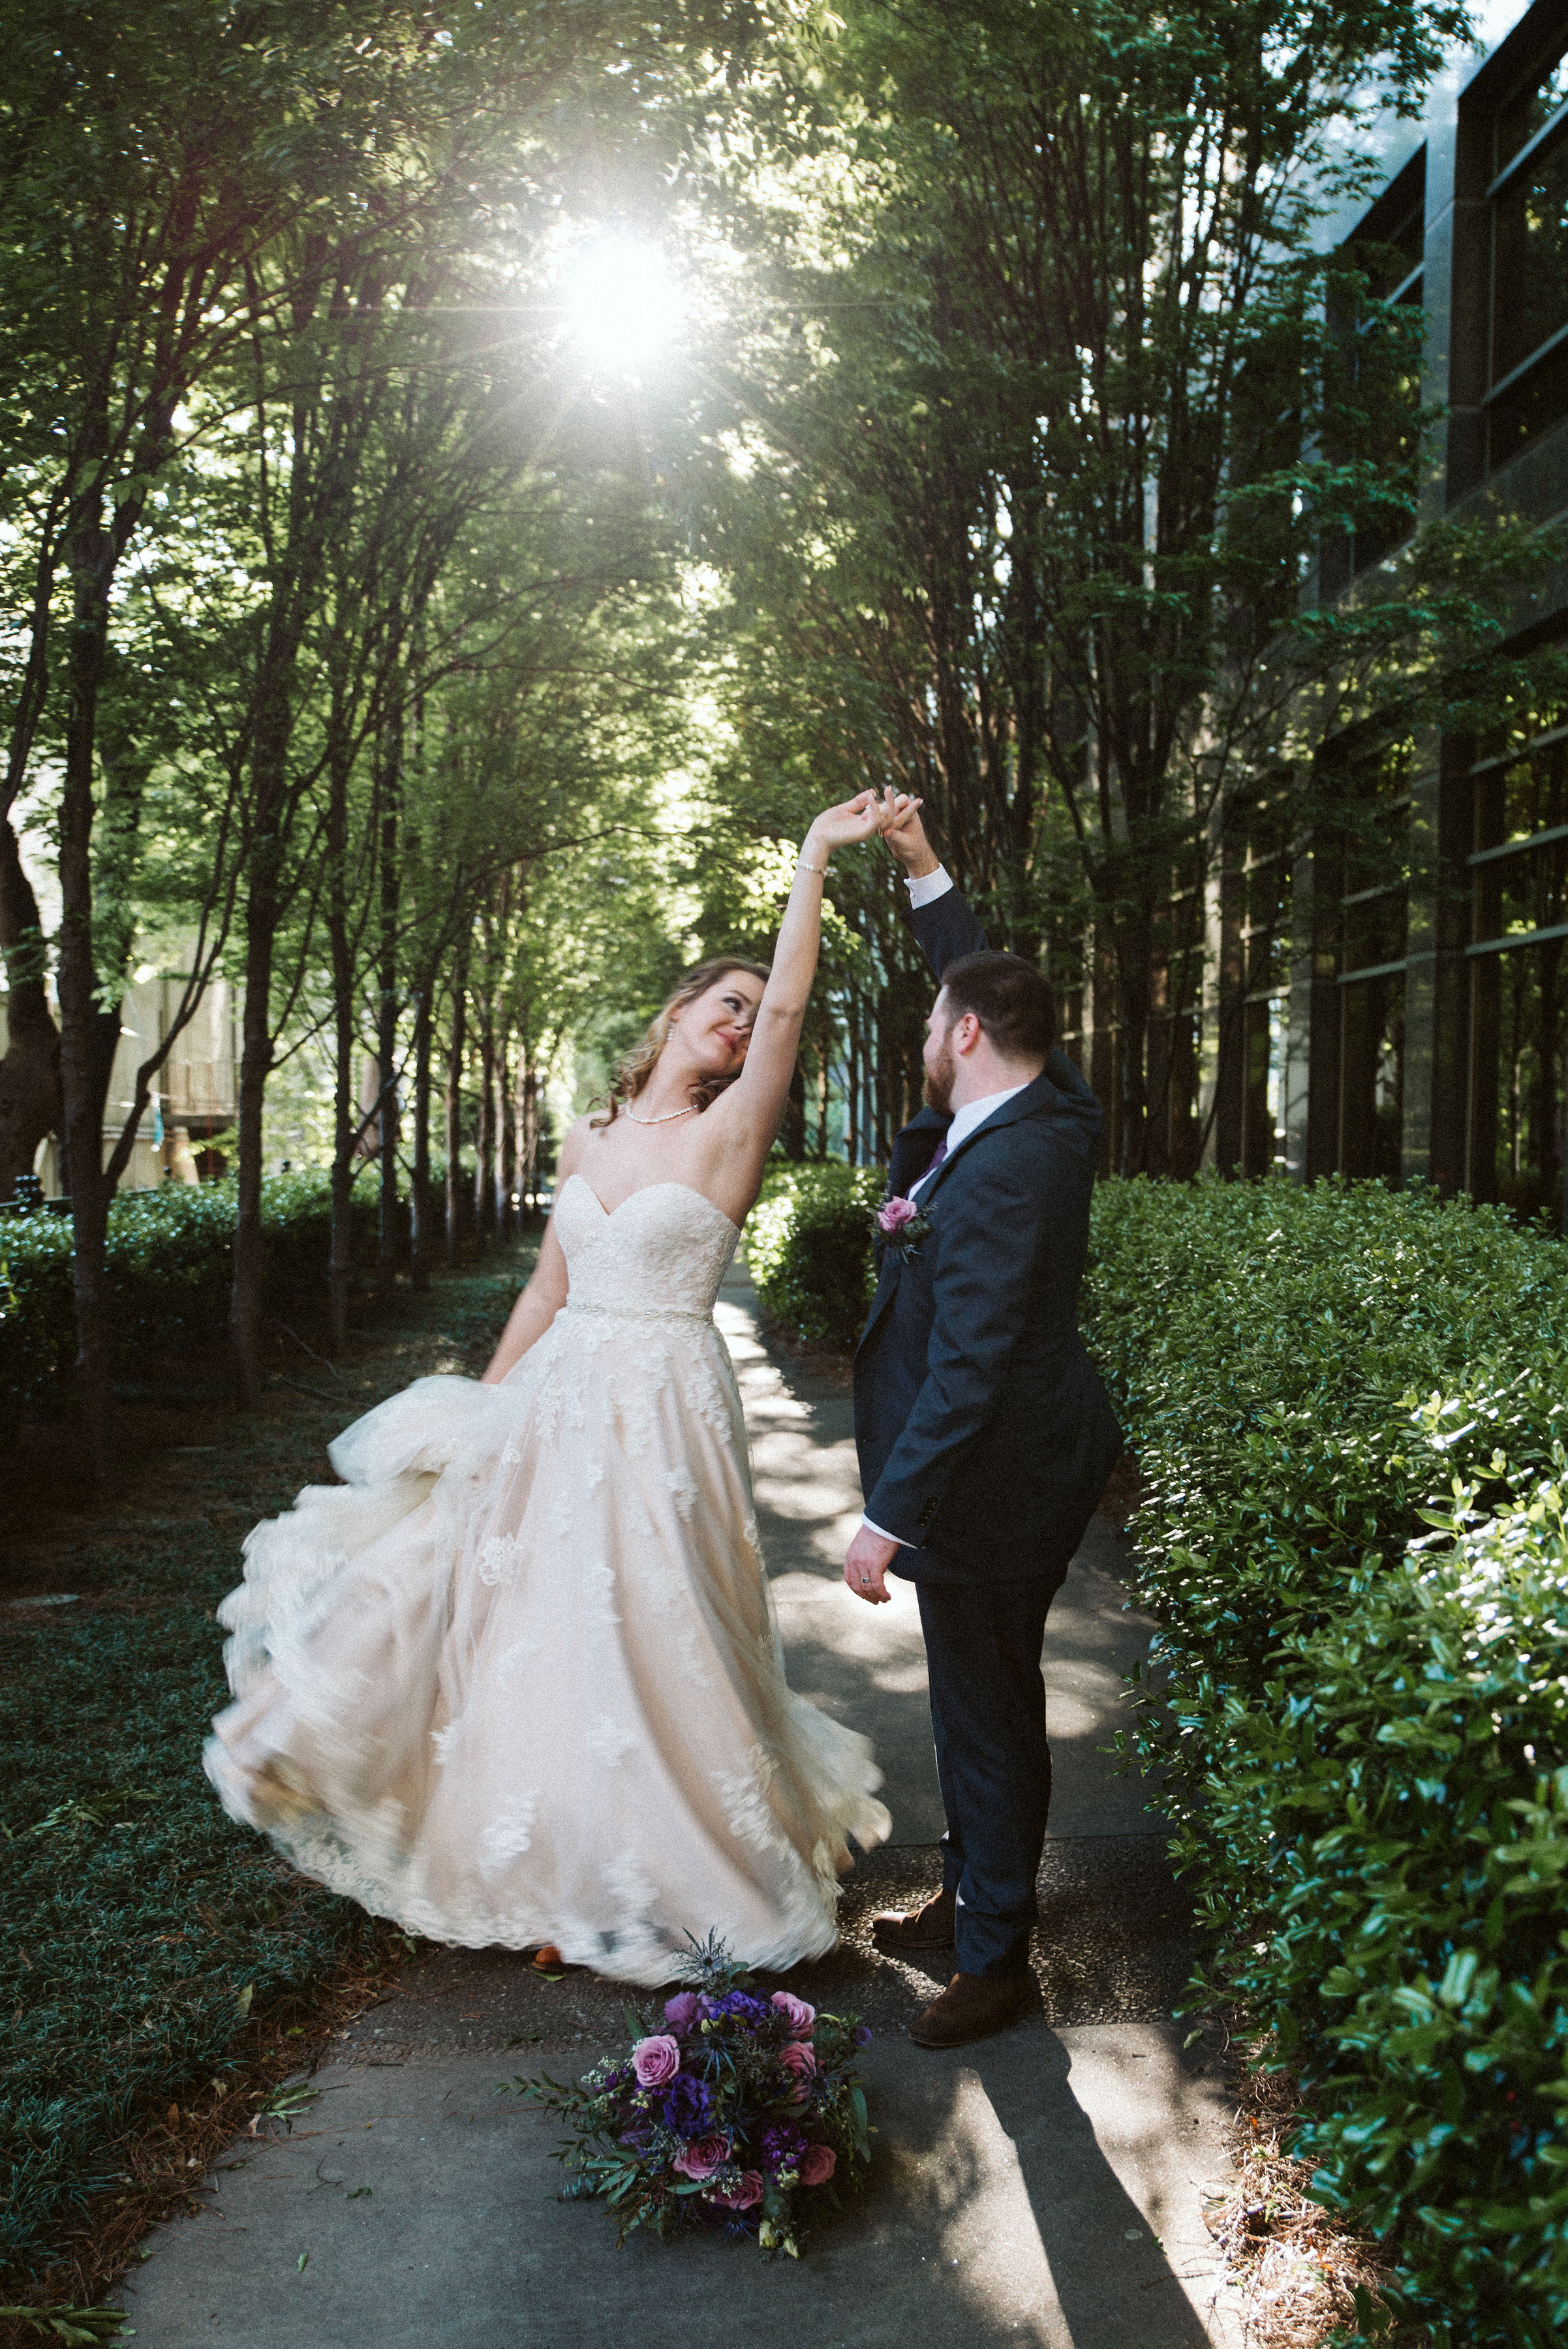 Groom twirls his bride beneath a sunlit canopy.